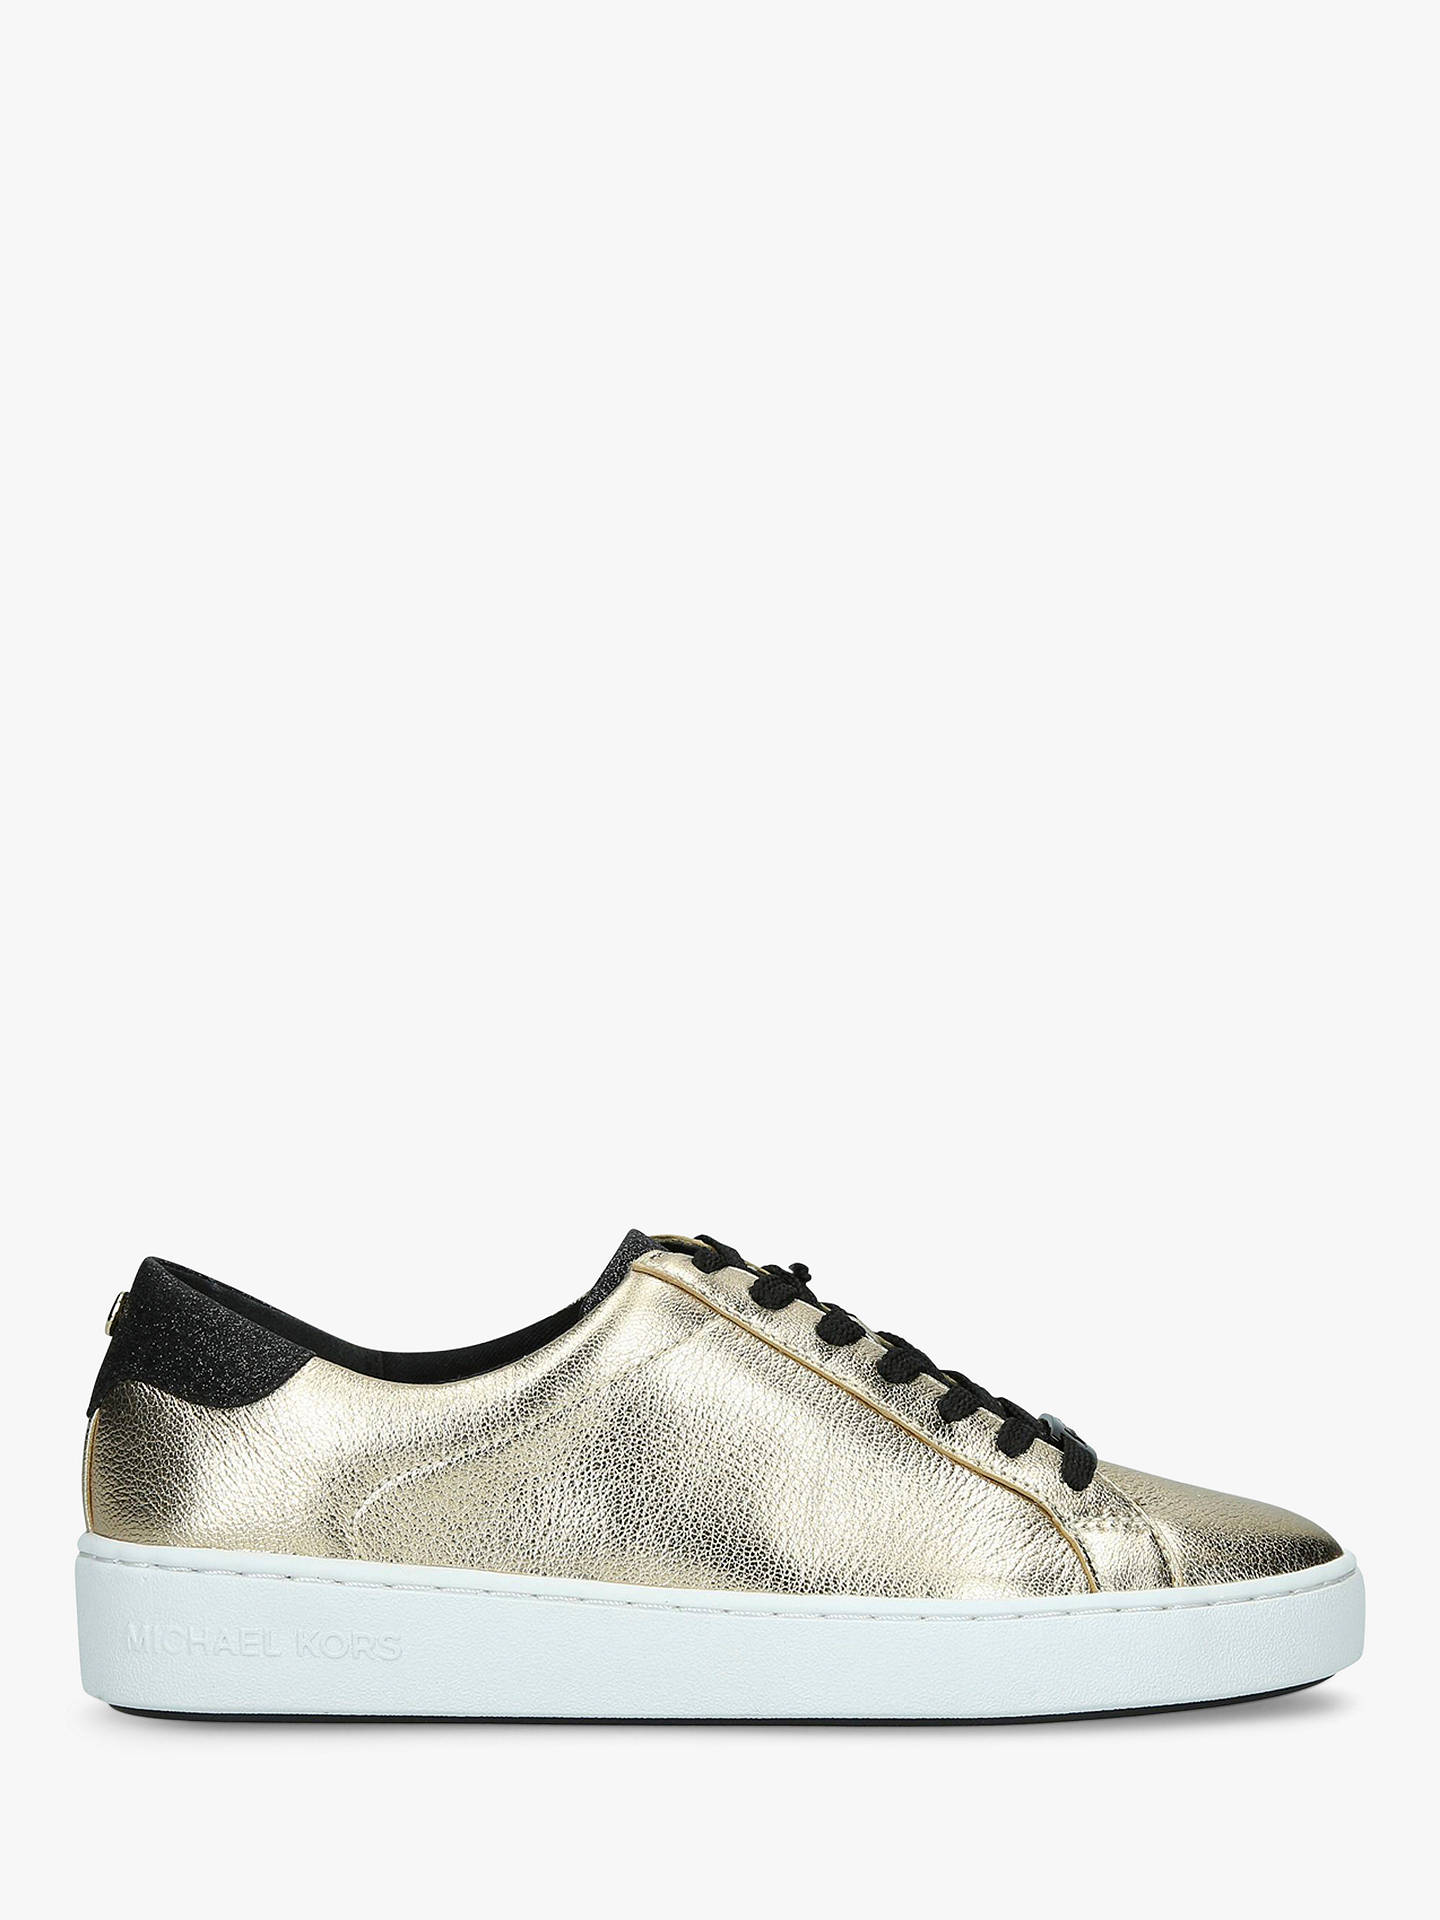 cede4ca912d Buy MICHAEL Micheal Kors Irving Leather Trainers